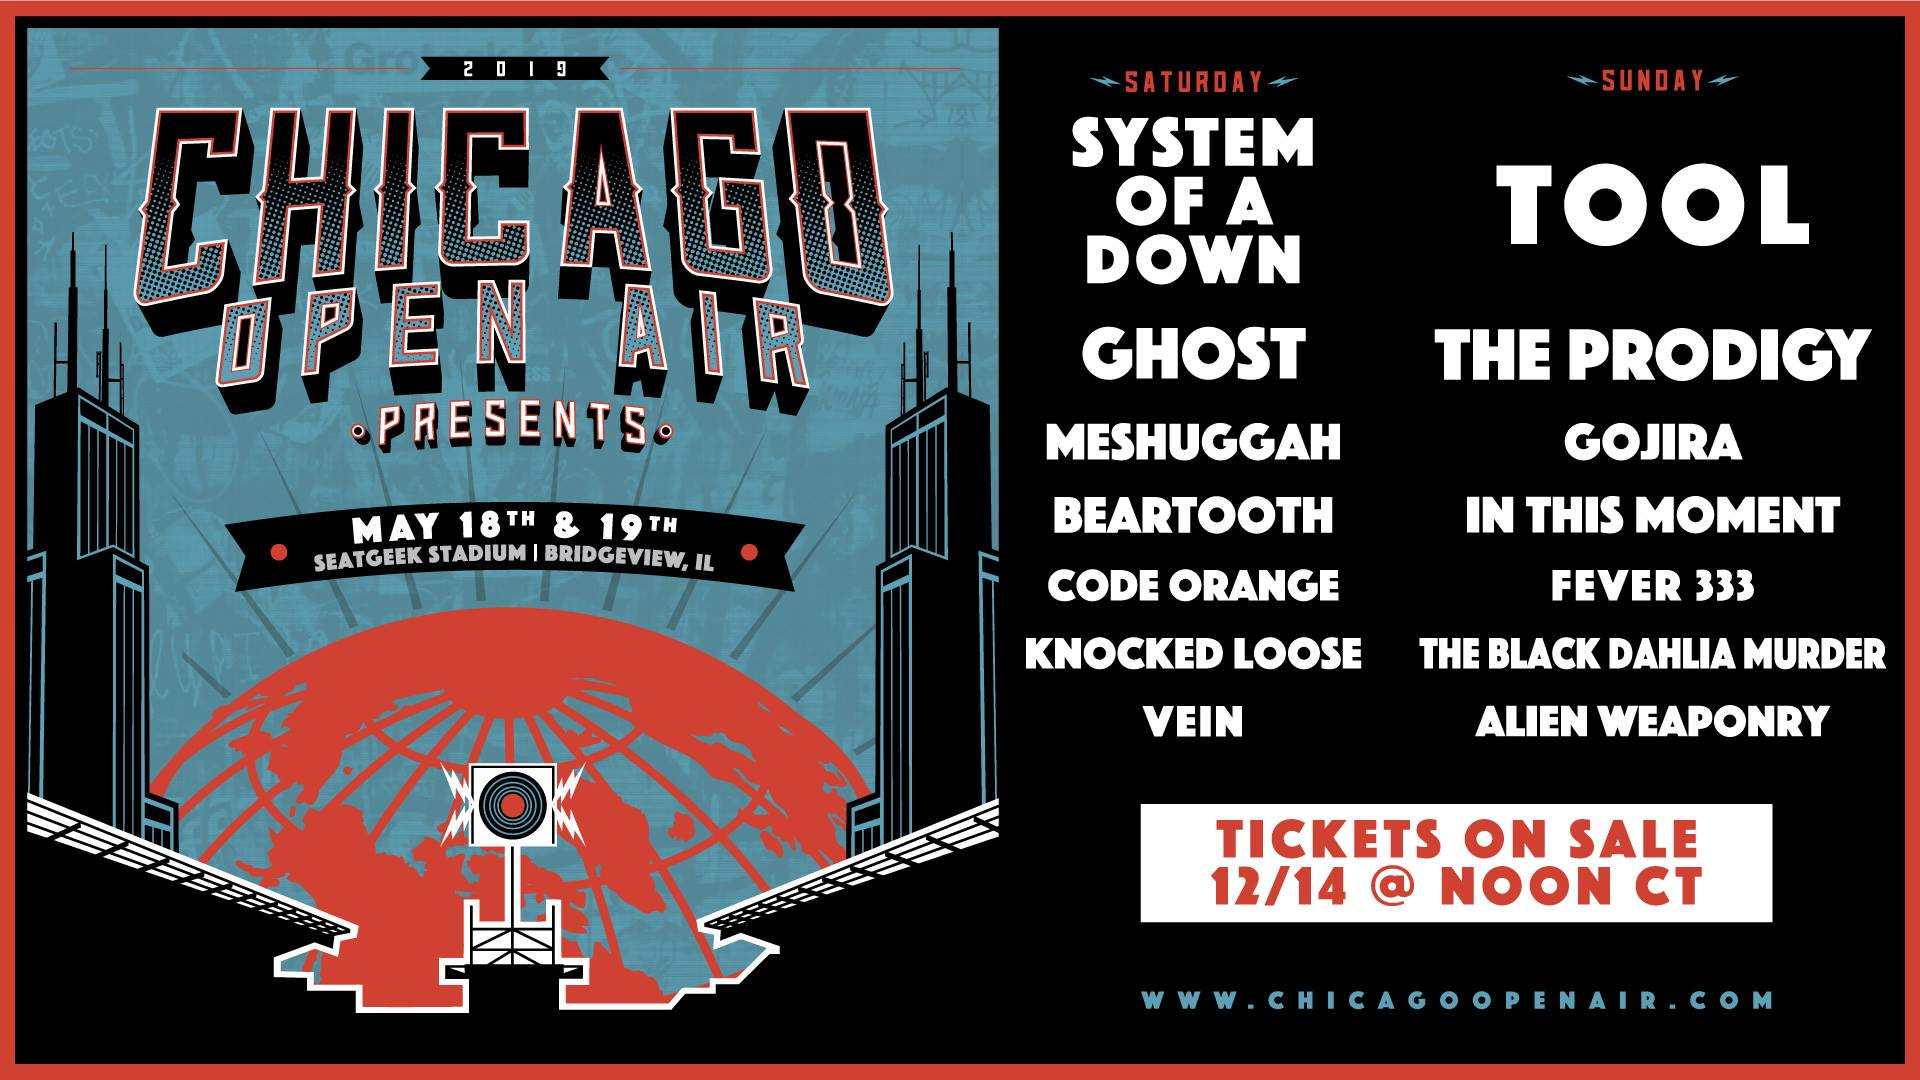 Just Announced! The Return of Chicago Open Air Festival To Toyota Park in Bridgeview, Il